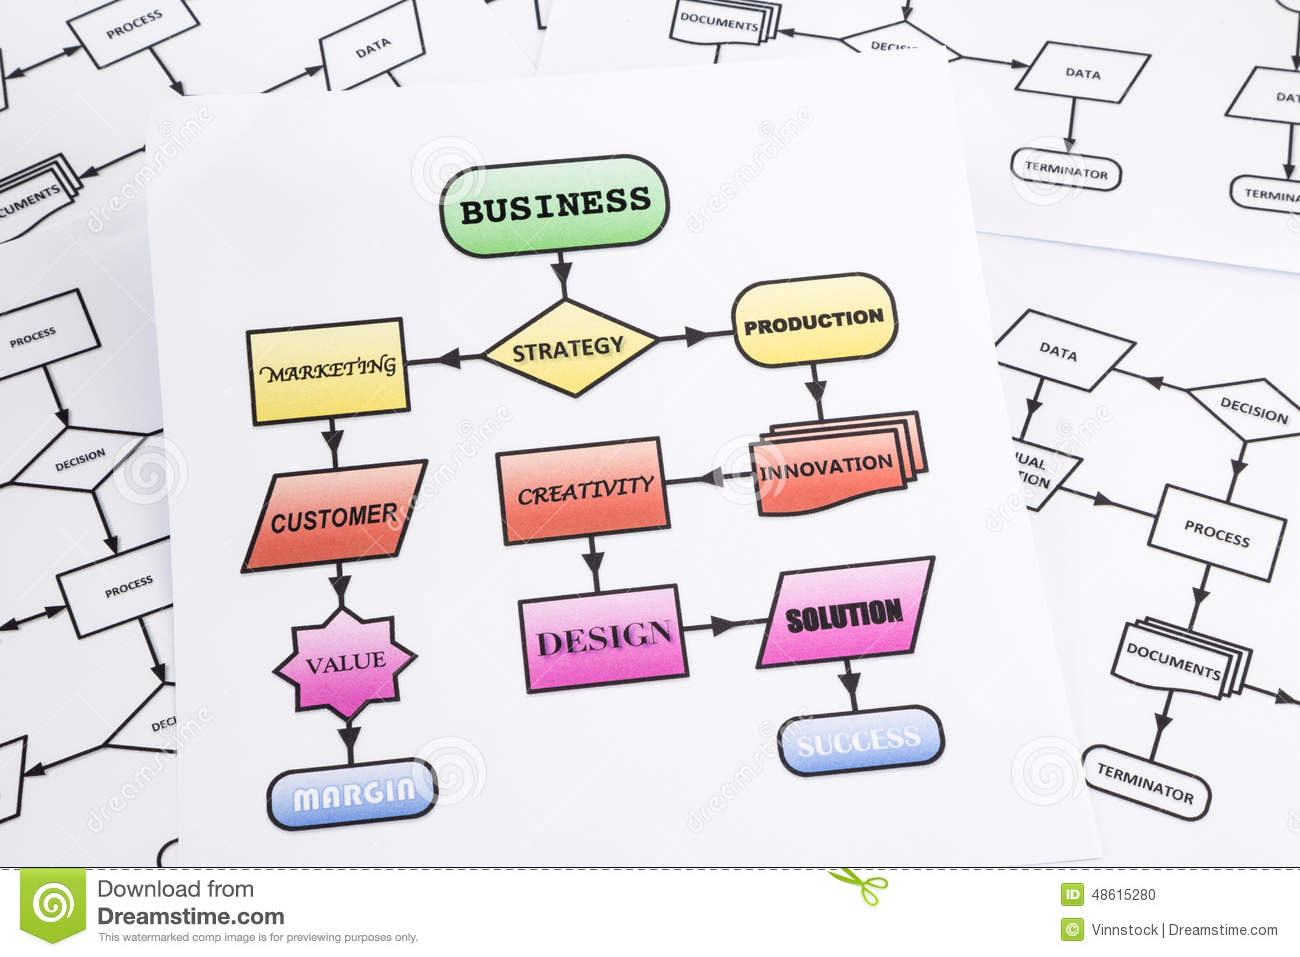 Process Flow Diagram Business Analyst Wiring Library Atm Wireframe